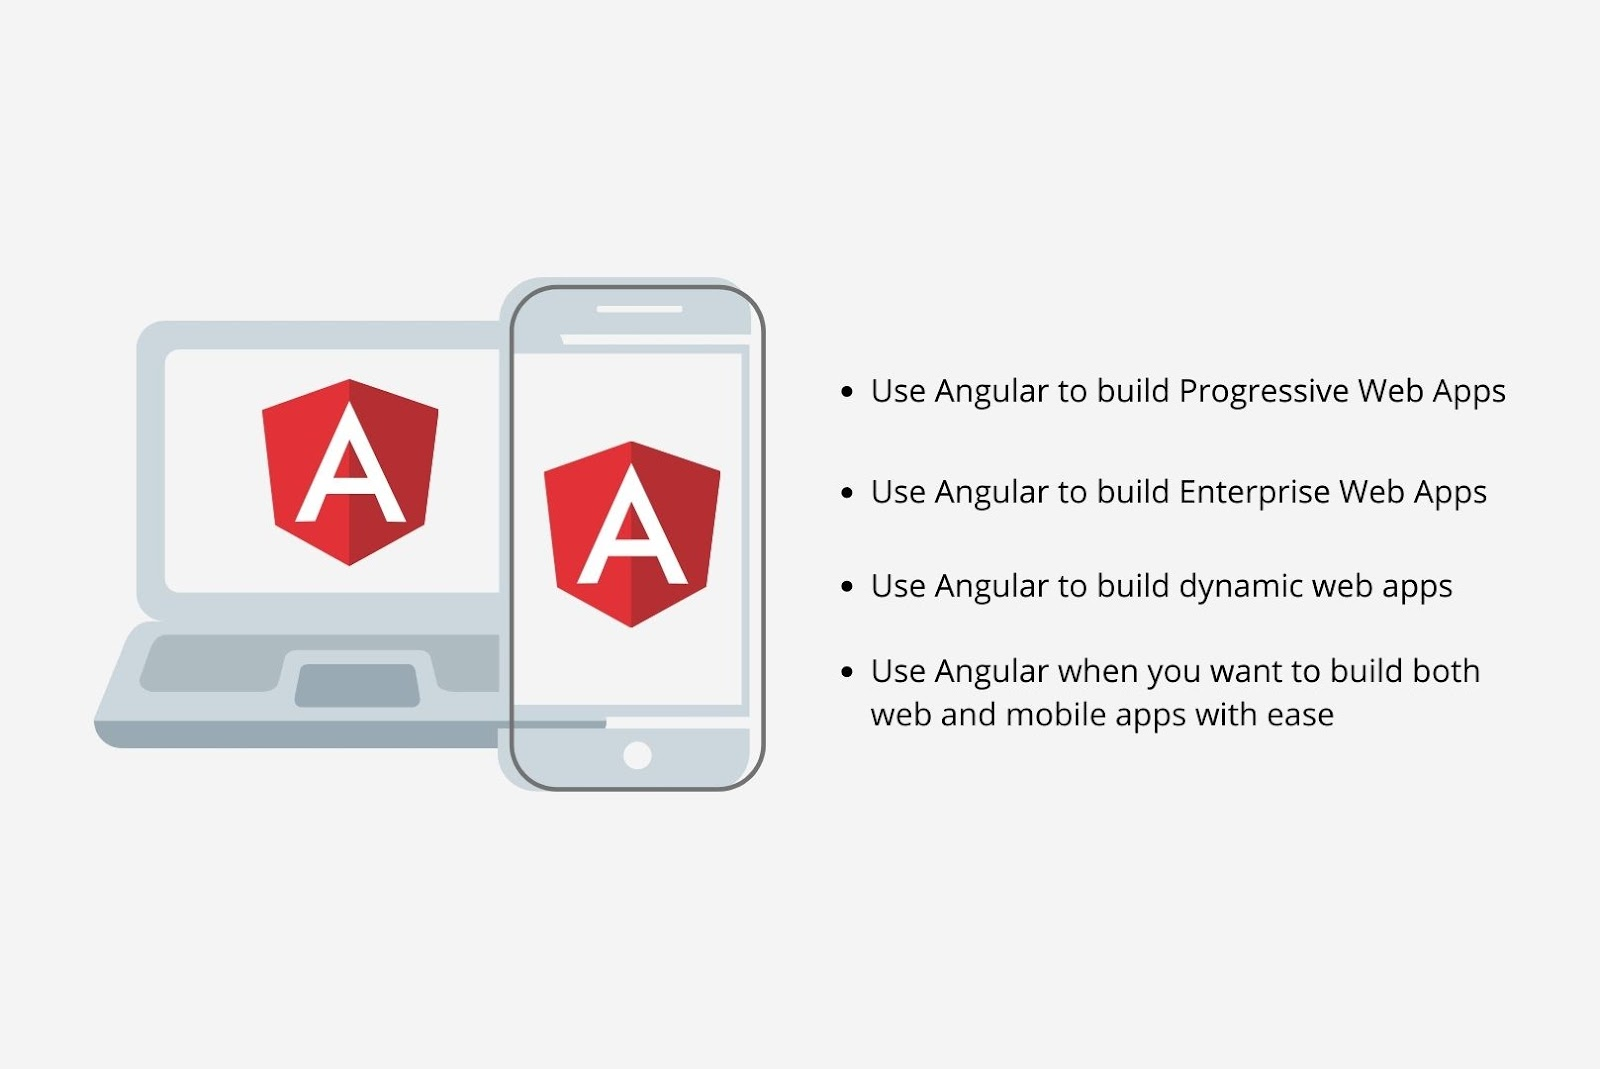 Use angular for your project